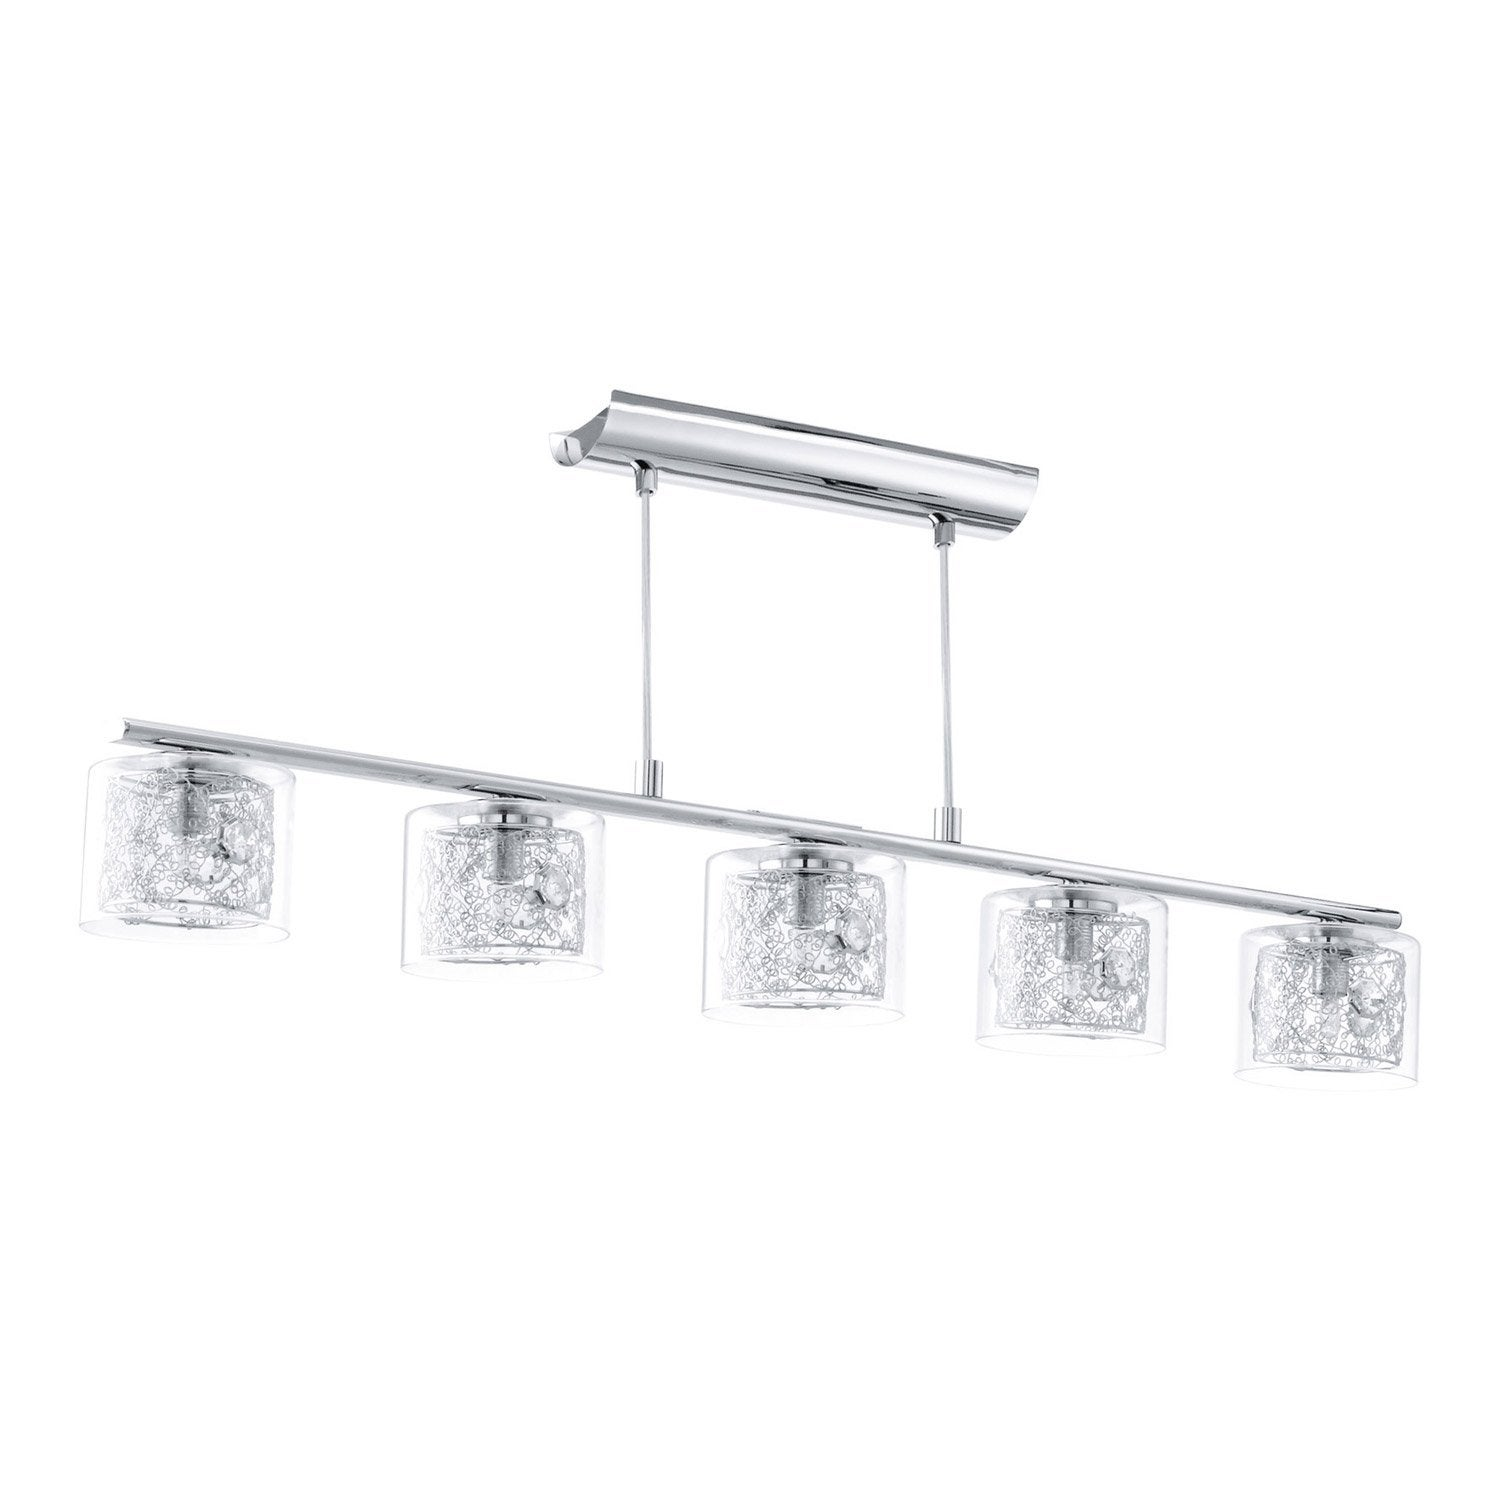 Suspension pianella eglo chrome 4x40 - Suspensions leroy merlin ...